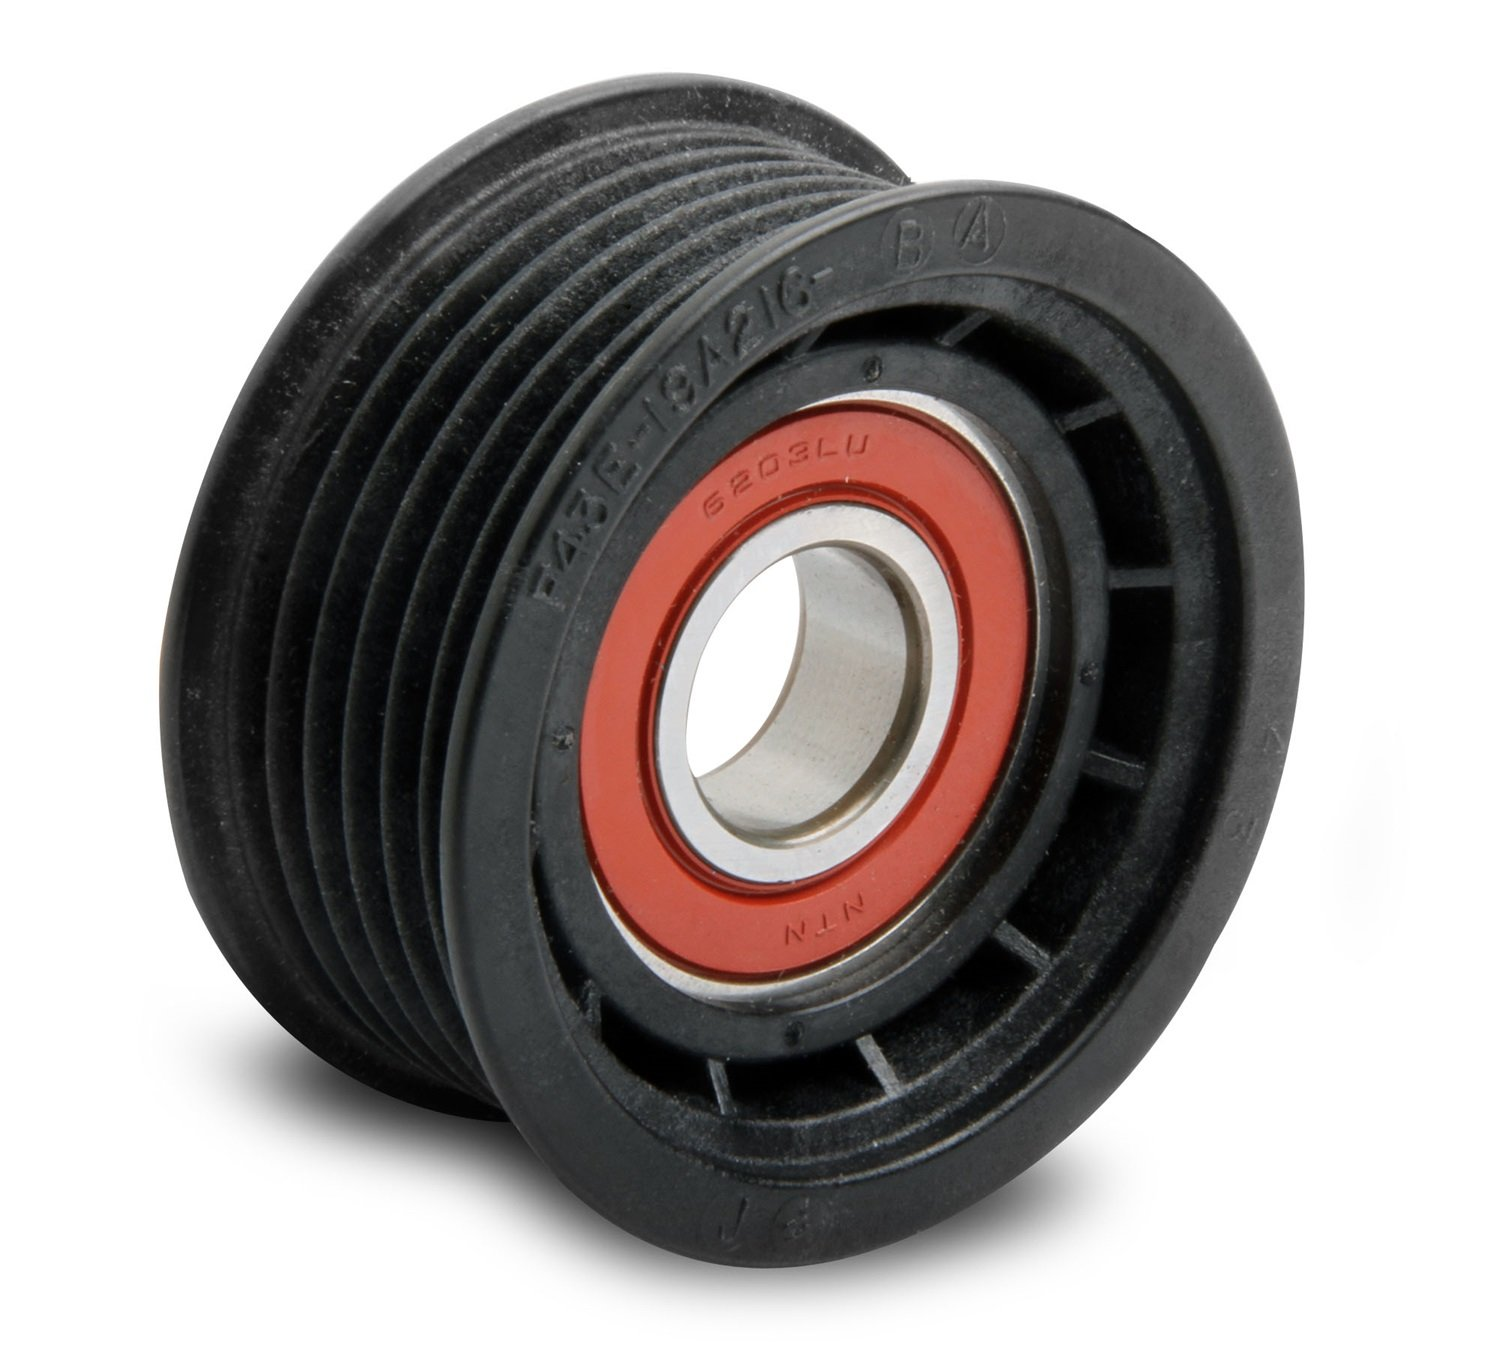 Holley 97-153 Idler Pulley by Holley